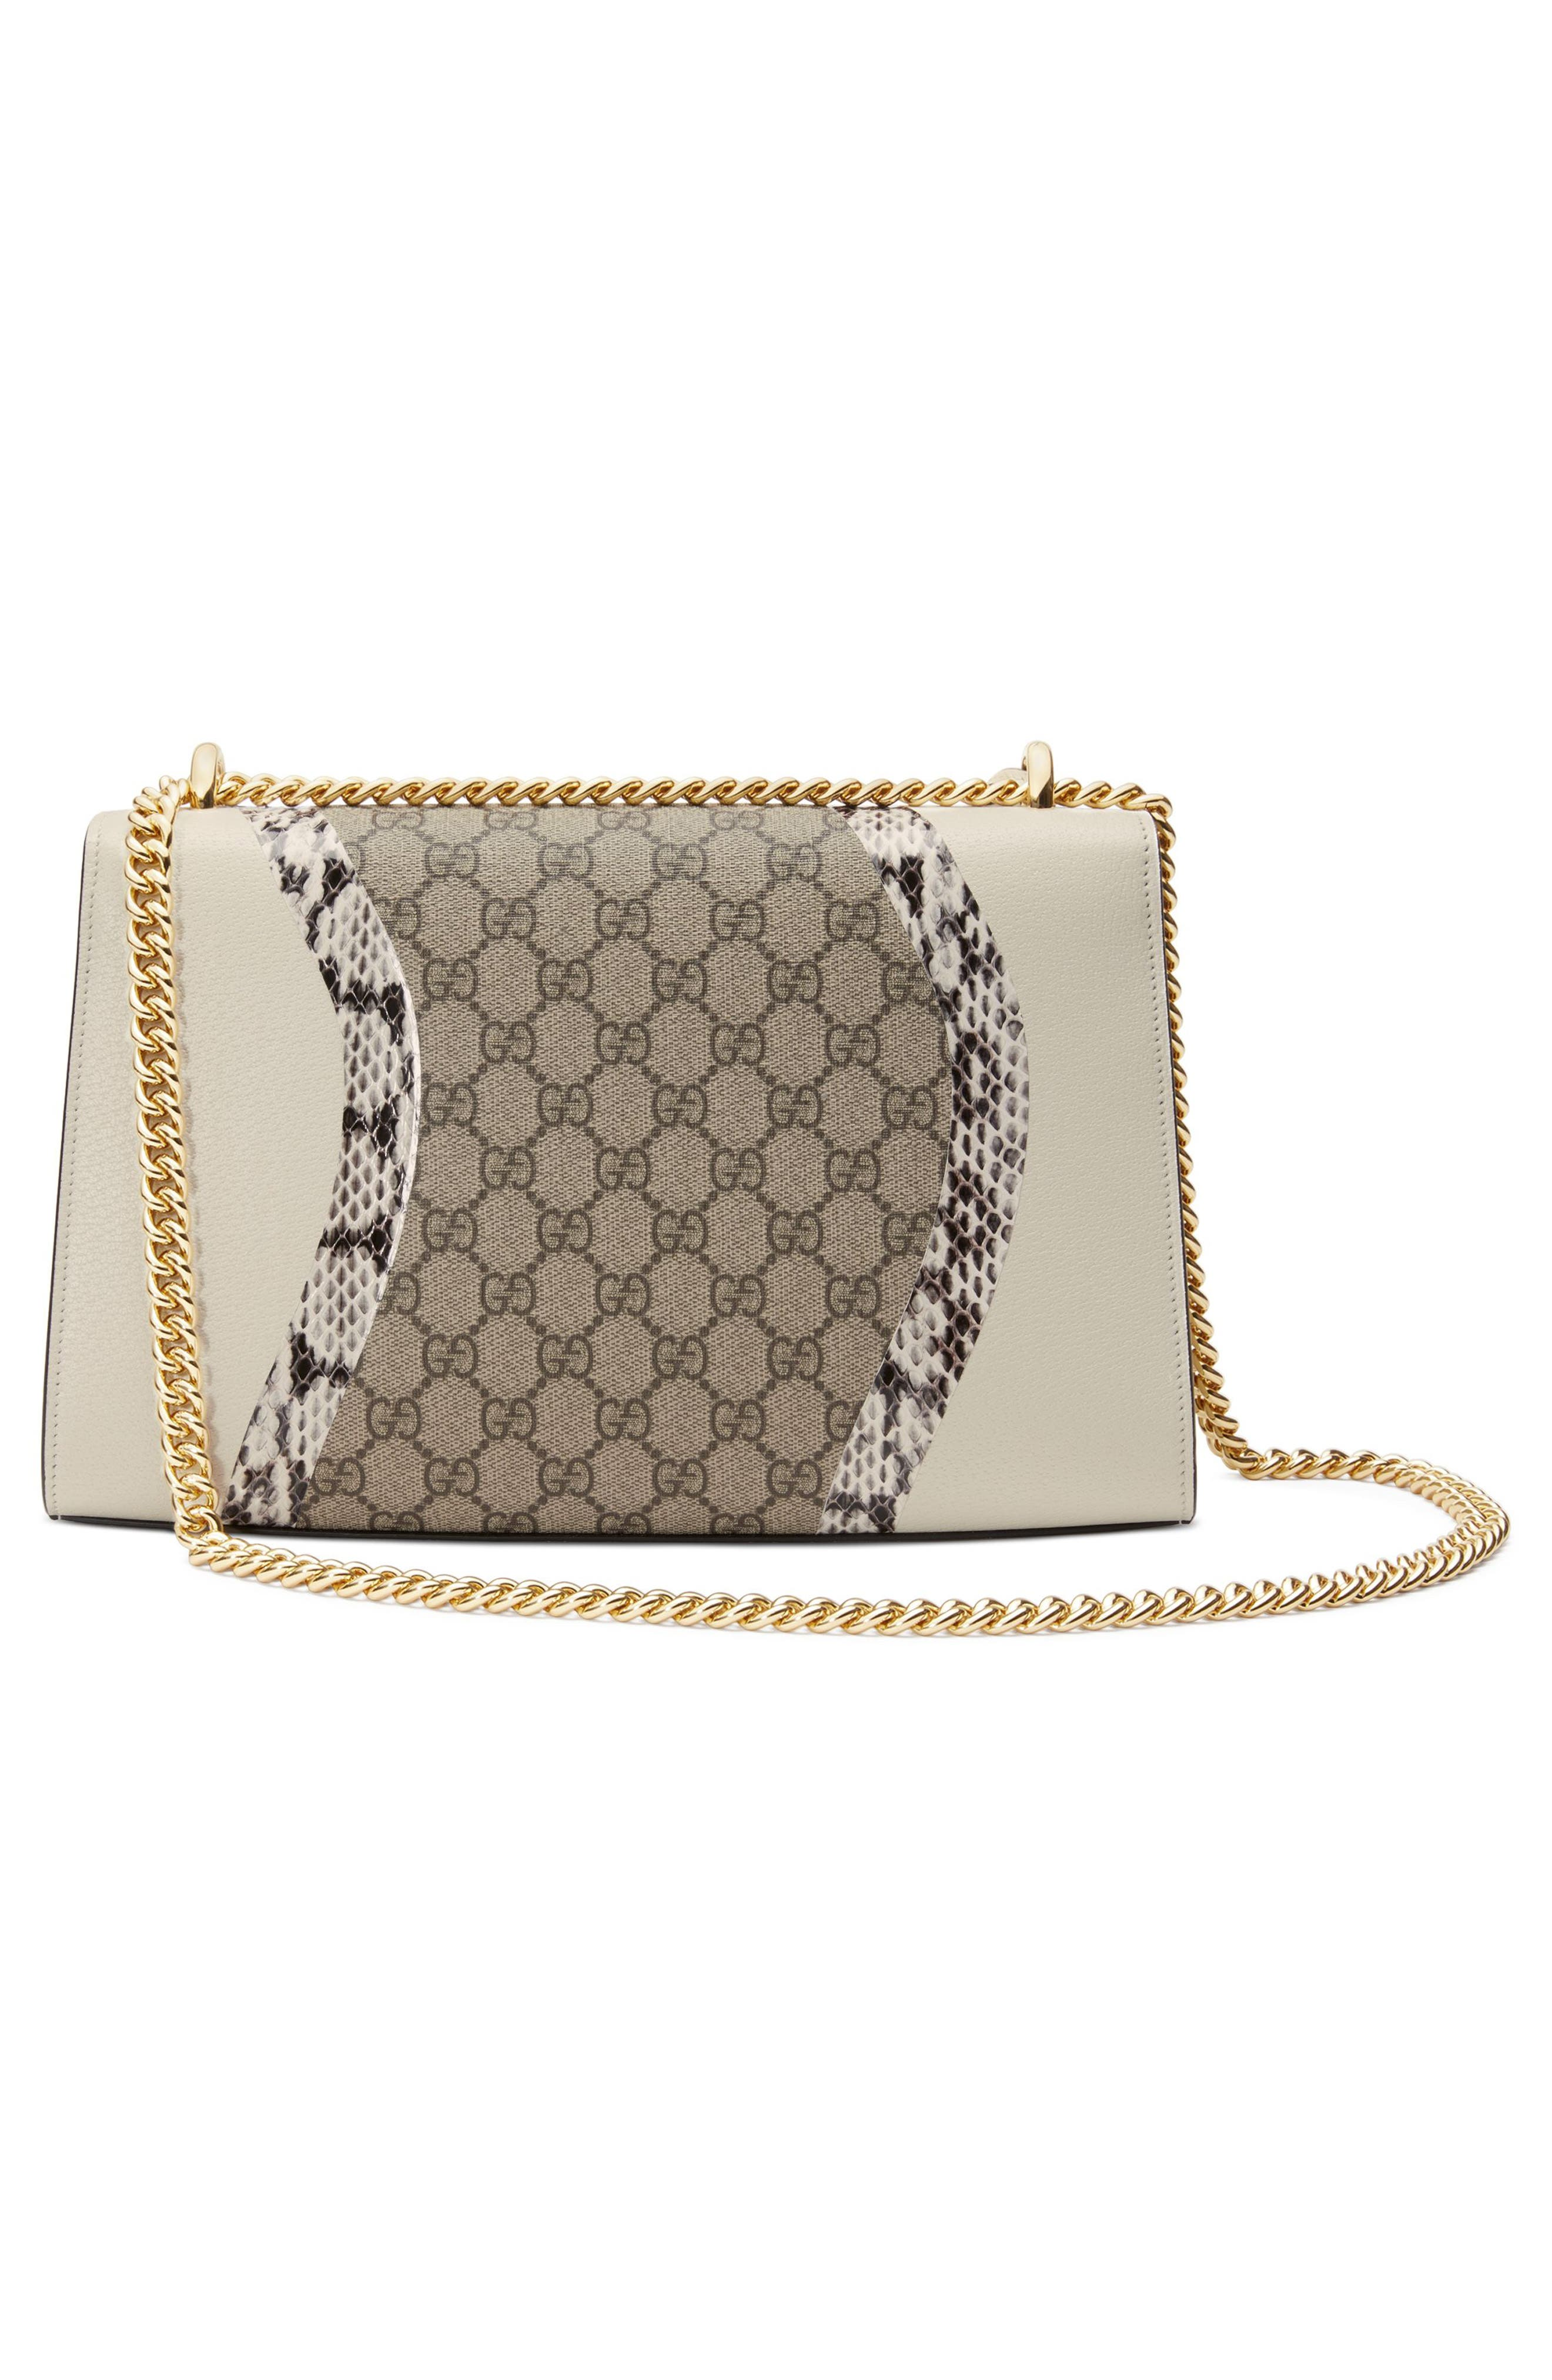 Medium Padlock GG Supreme Wave Shoulder Bag with Genuine Snakeskin Trim,                             Alternate thumbnail 2, color,                             White/ Roccia/ Beige Ebony